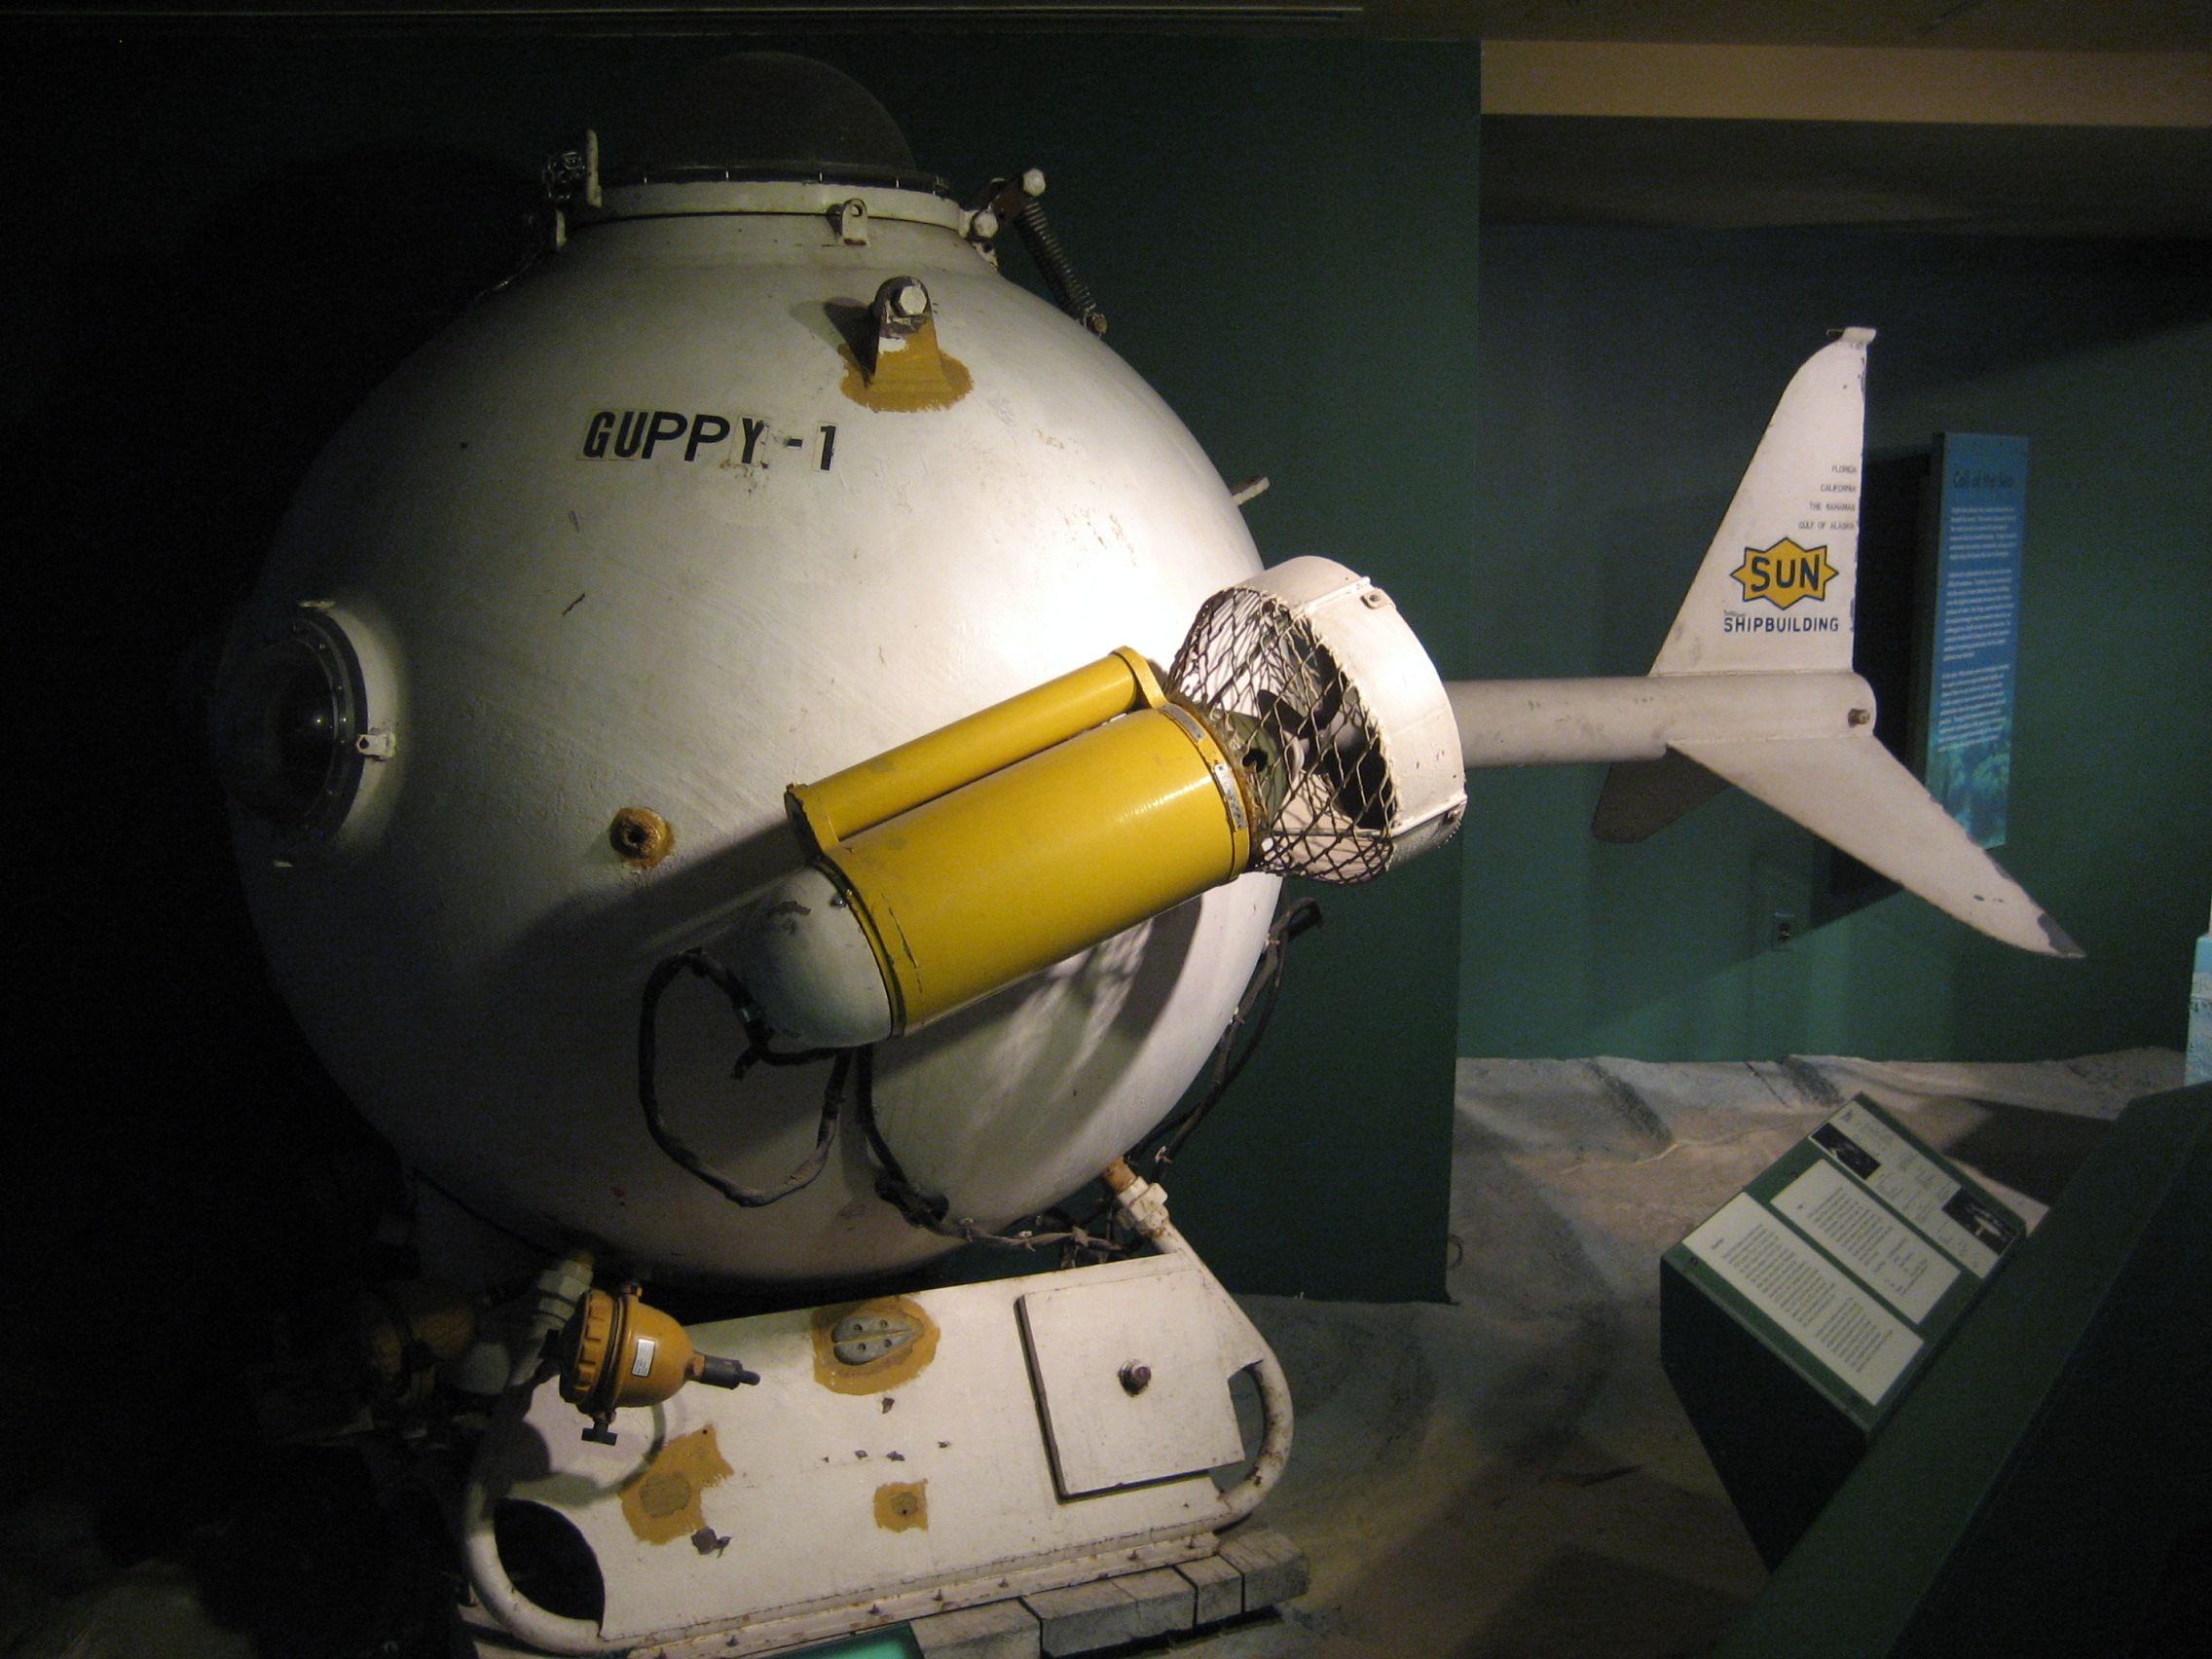 Guppy-1 submersible.jpg